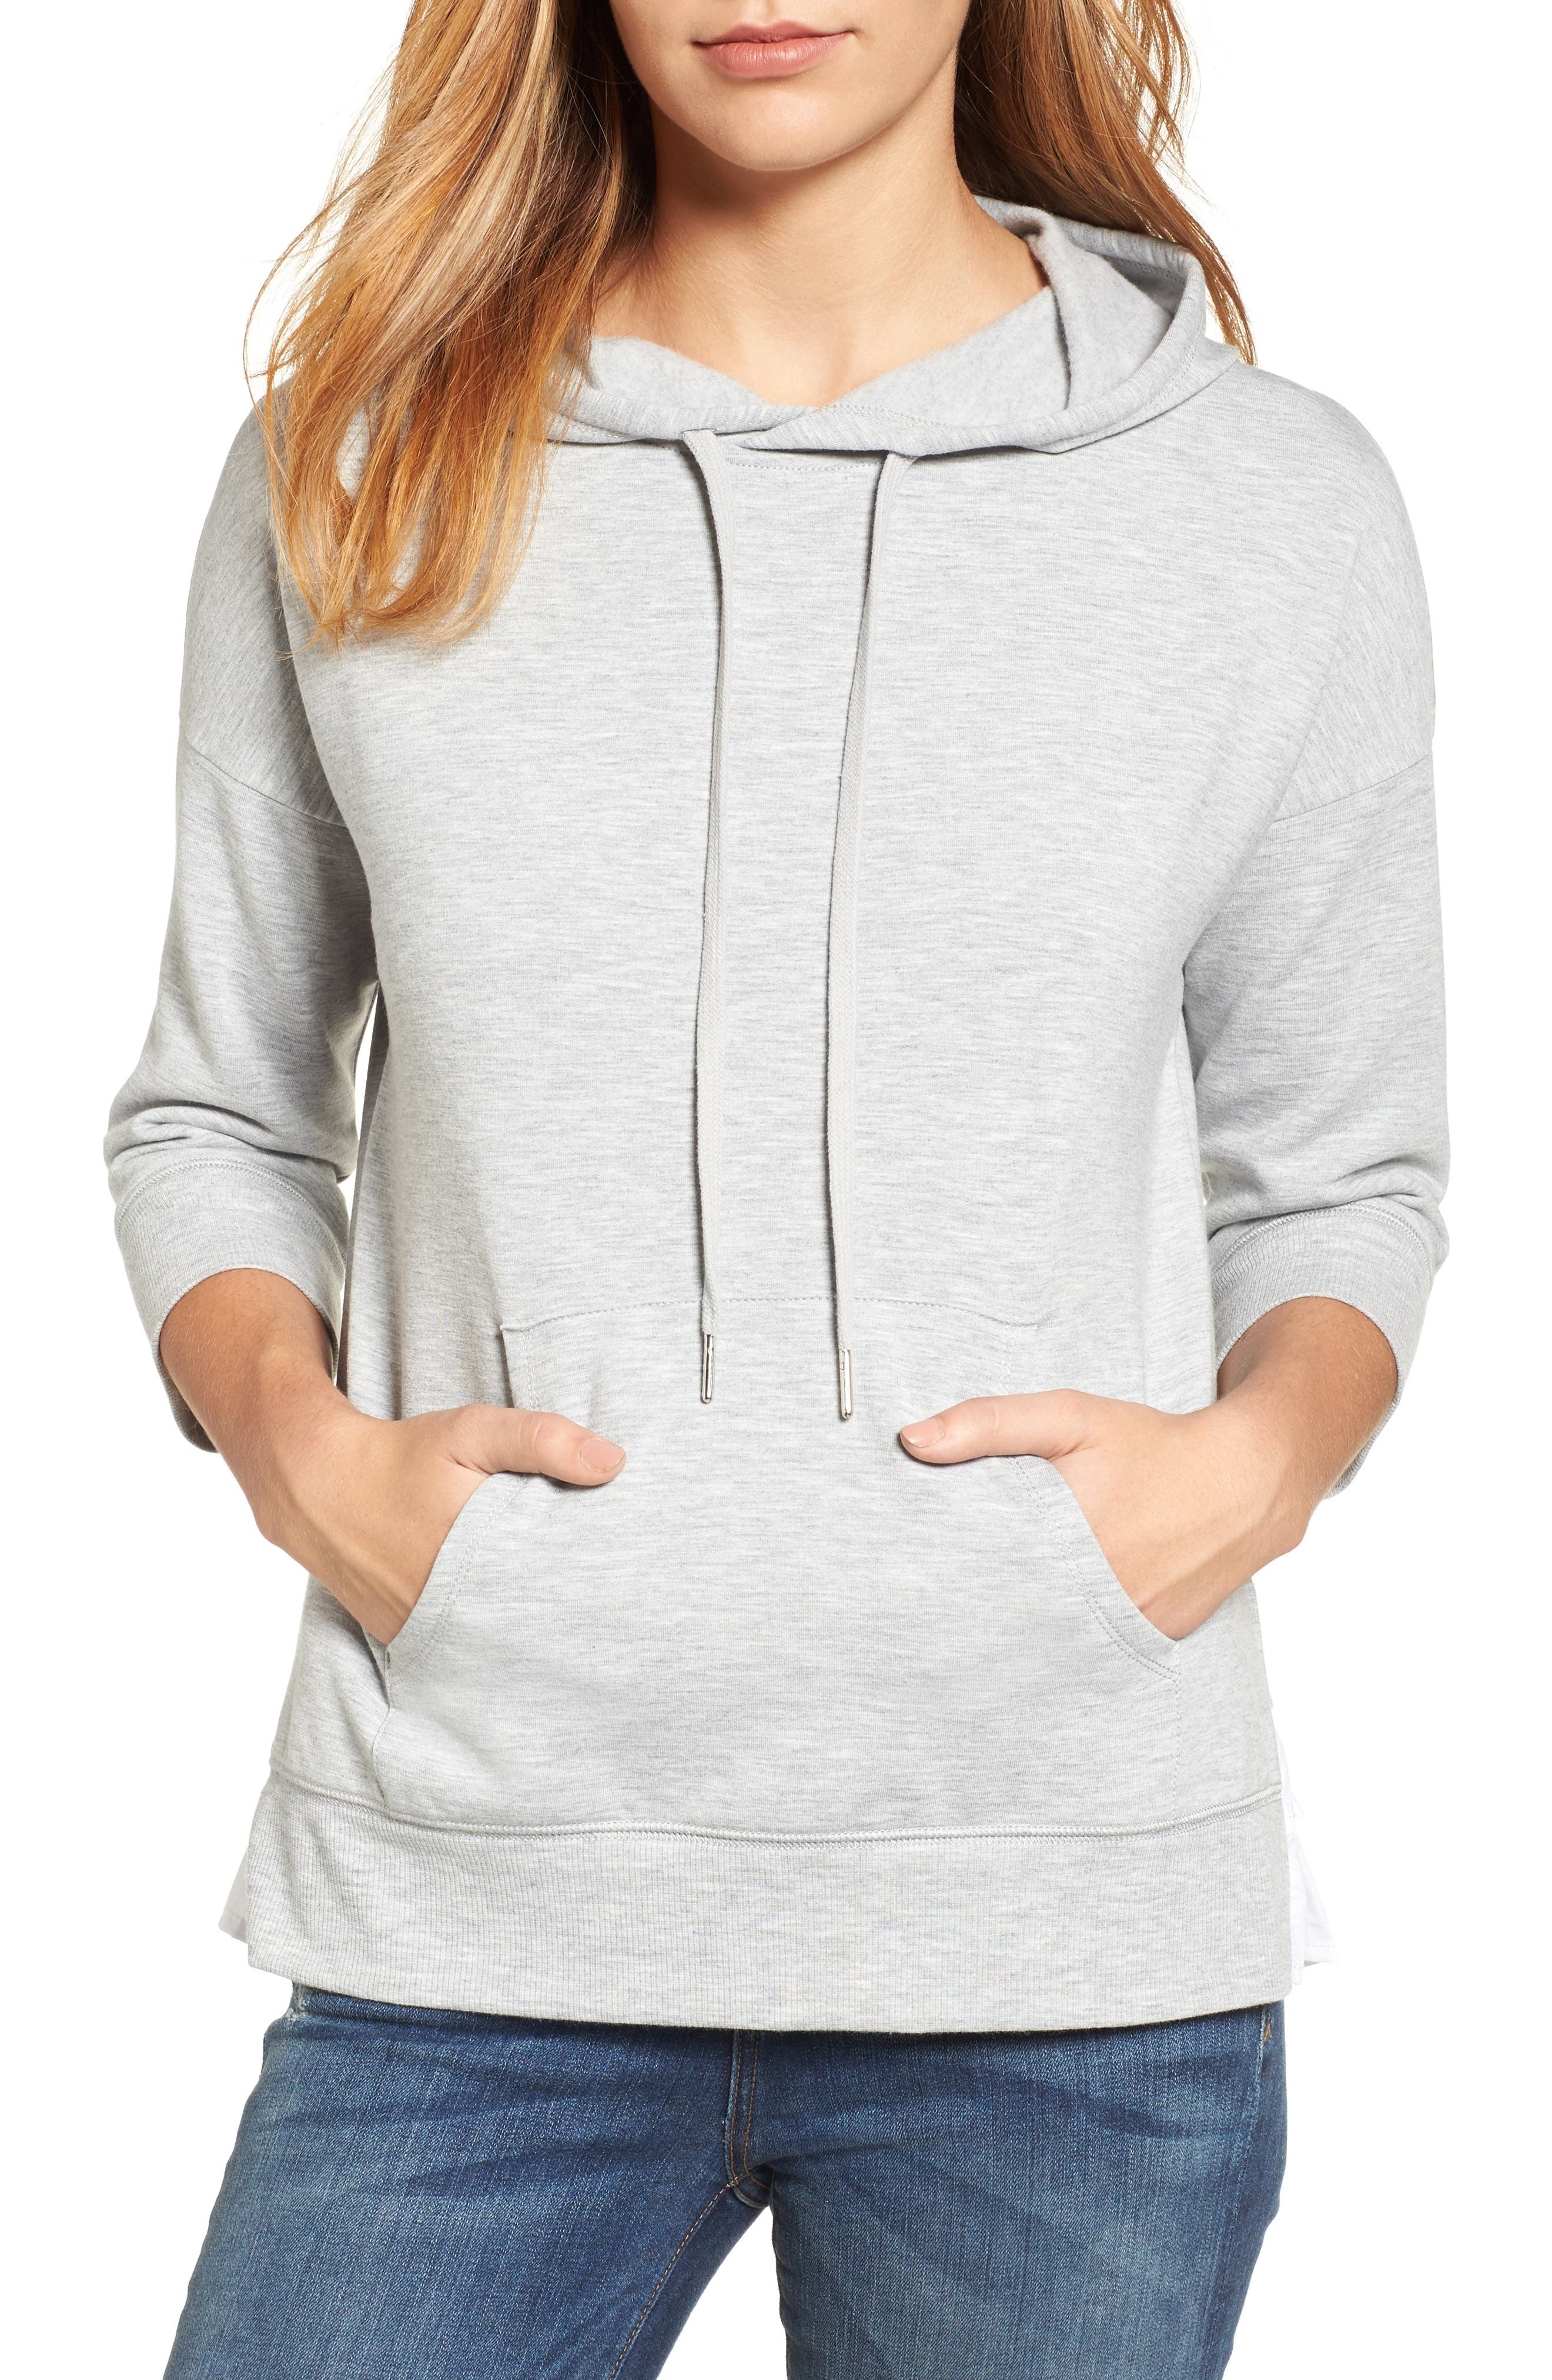 Main Image - Caslon® Woven Inset Knit Hoodie (Regular & Petite)